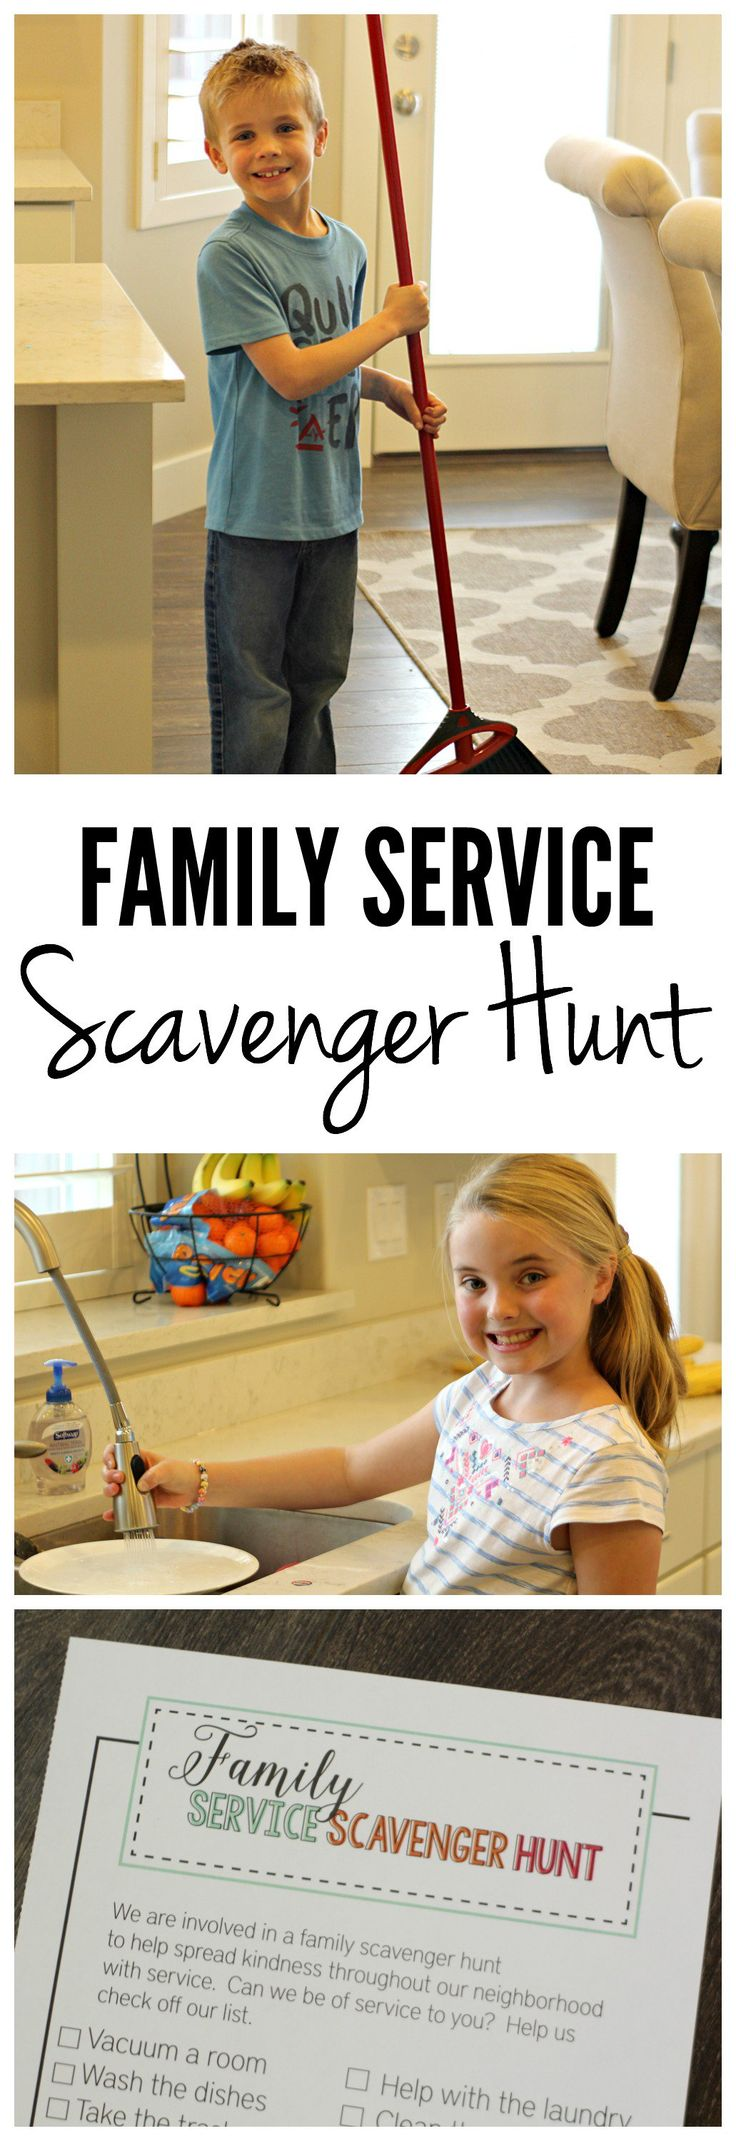 Family Service Scavenger Hunt on SixSistersStuff.com